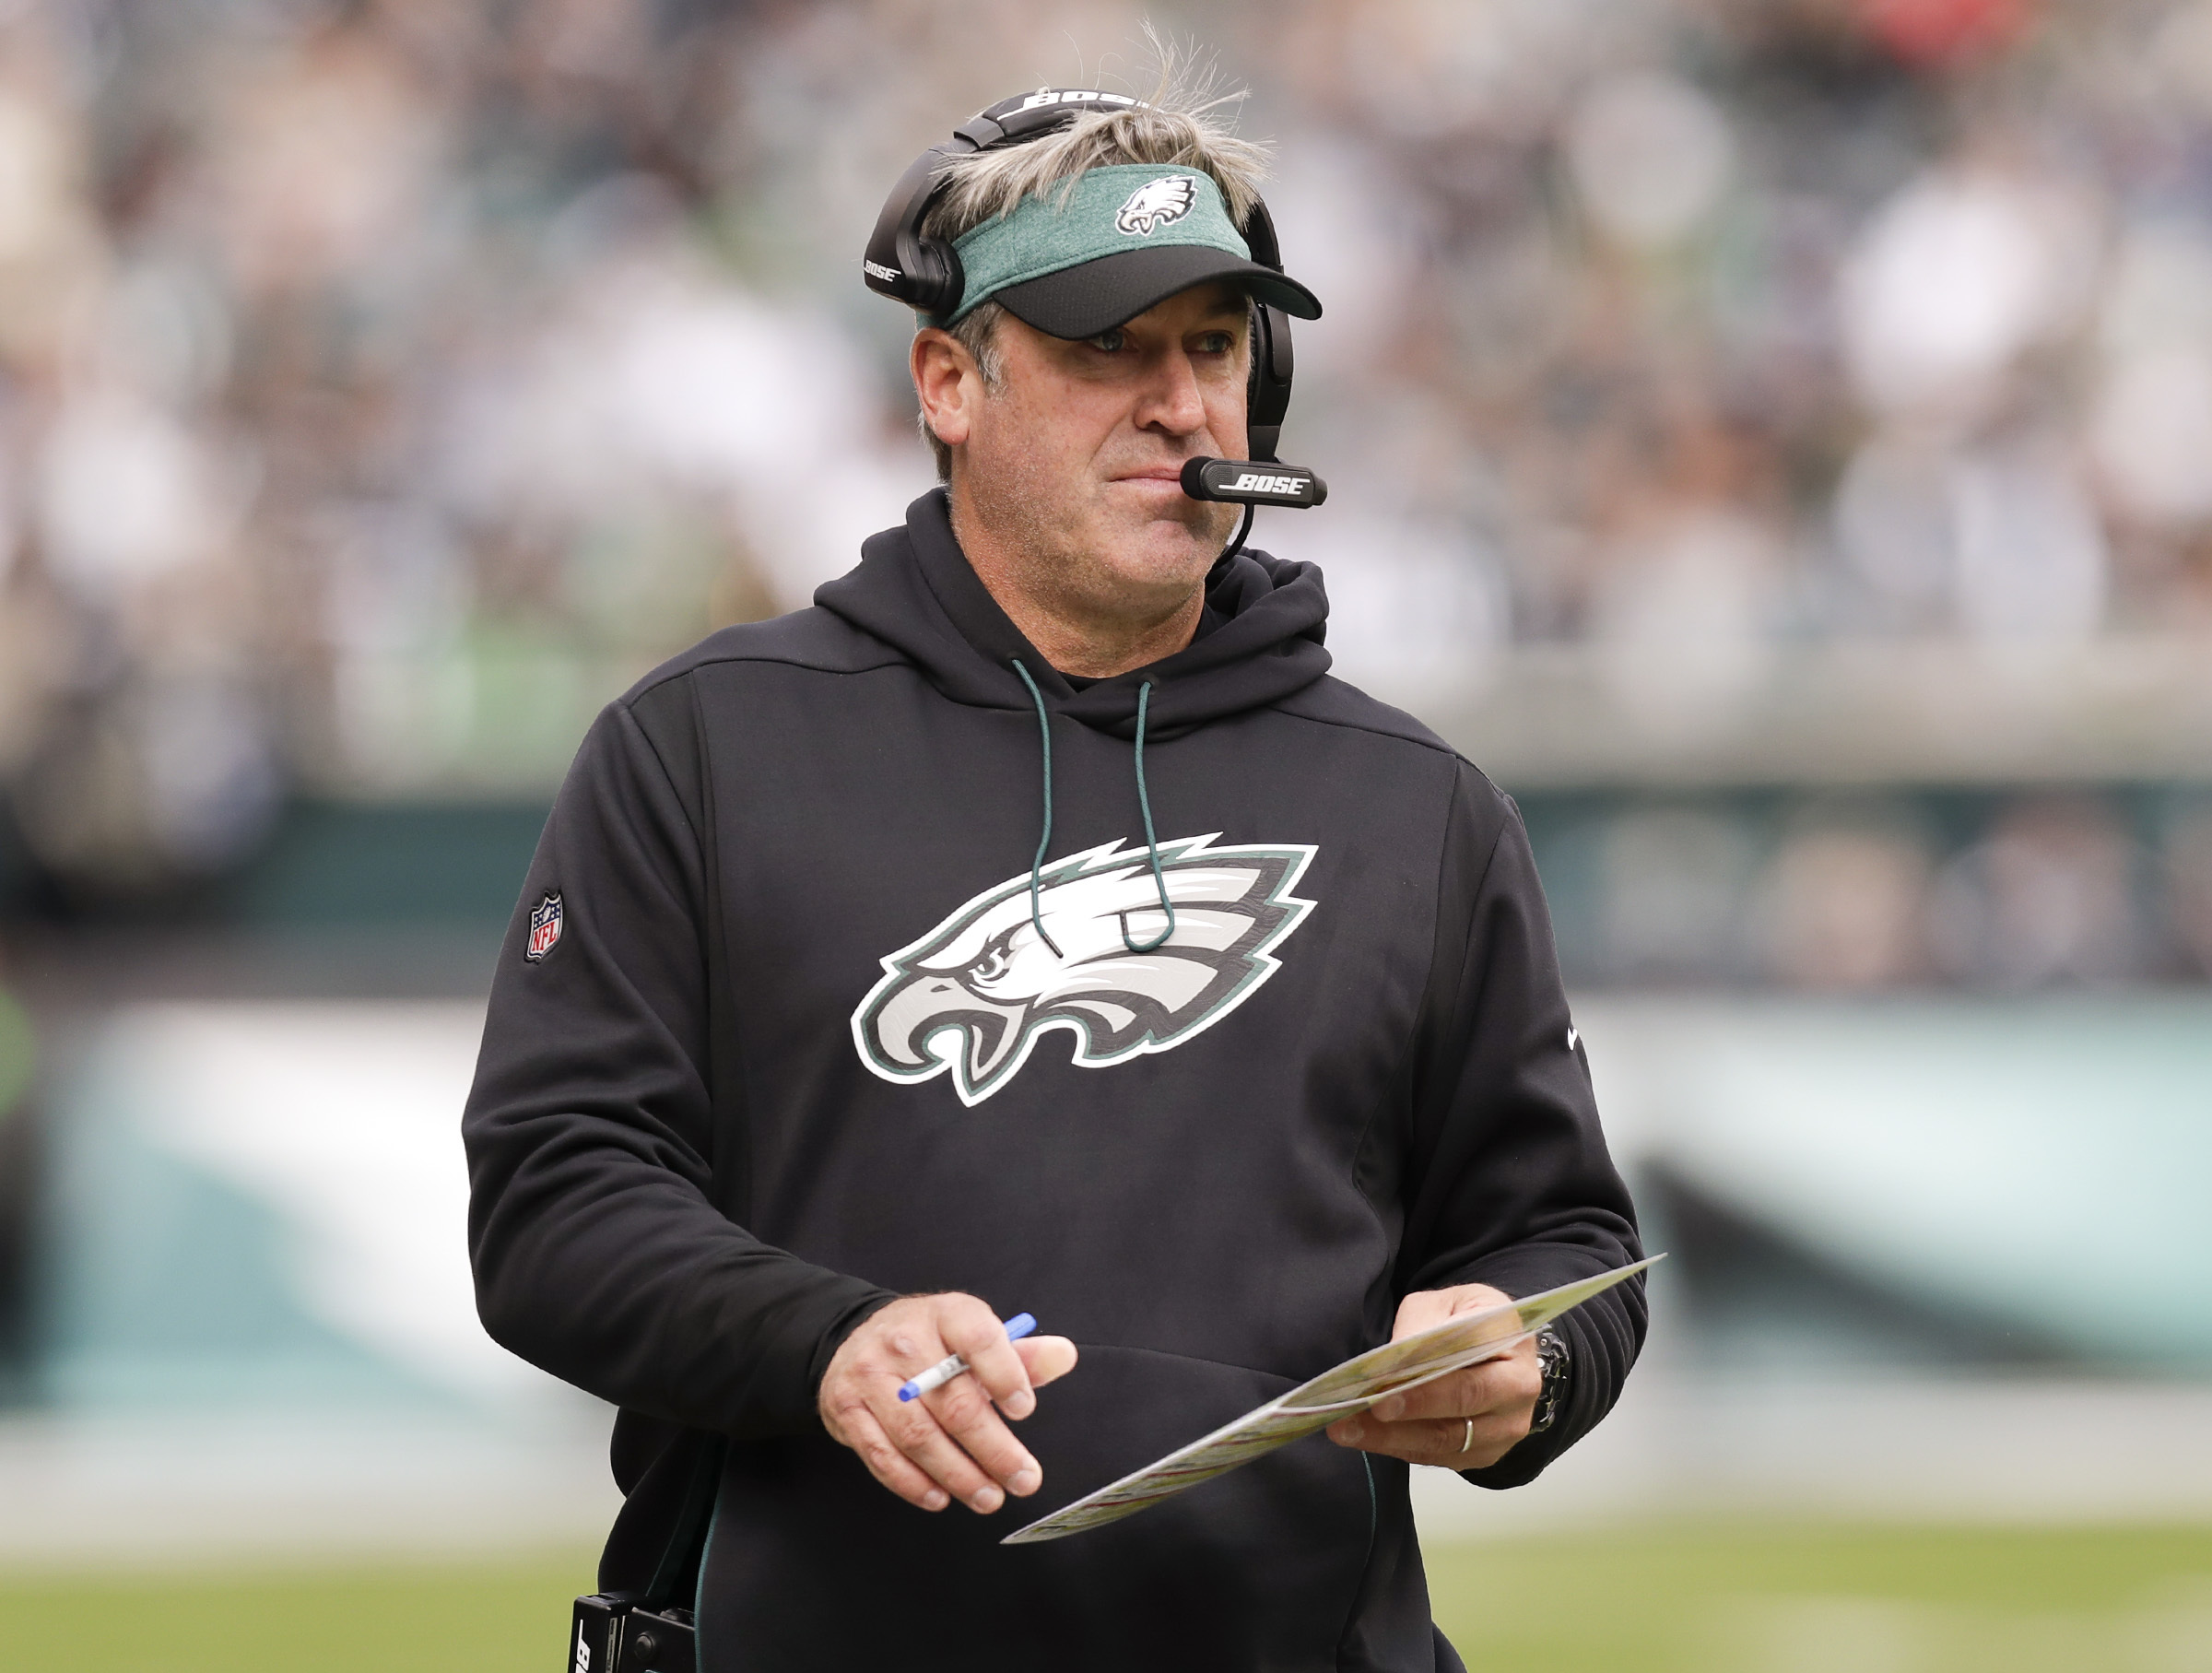 Eagles coach Doug Pederson during the game against the Panthers.